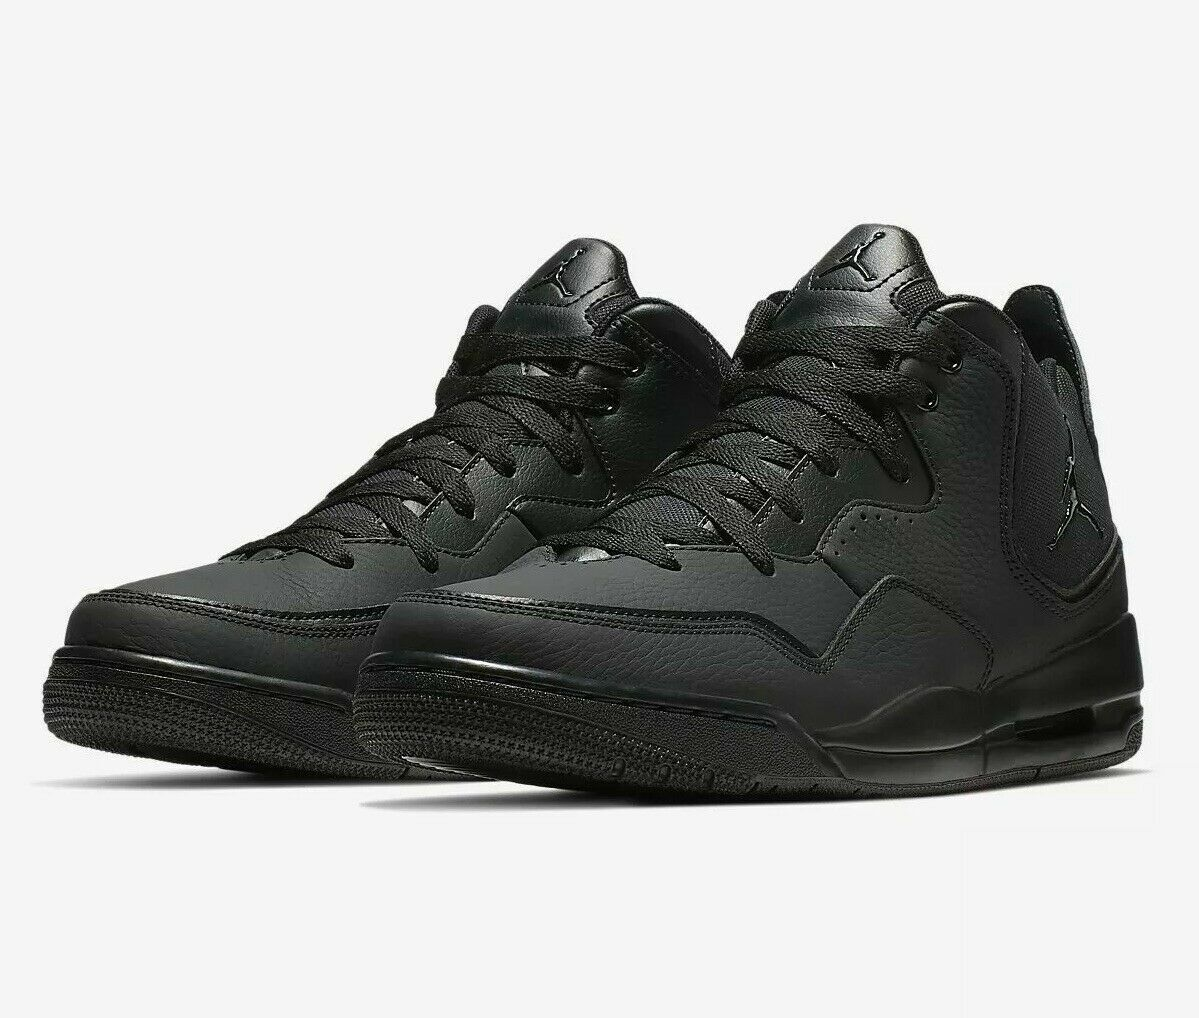 NIKE JORDAN COURTSIDE 23 (CD1522 001) hommes TRAINERS UK 12 EU 47.5